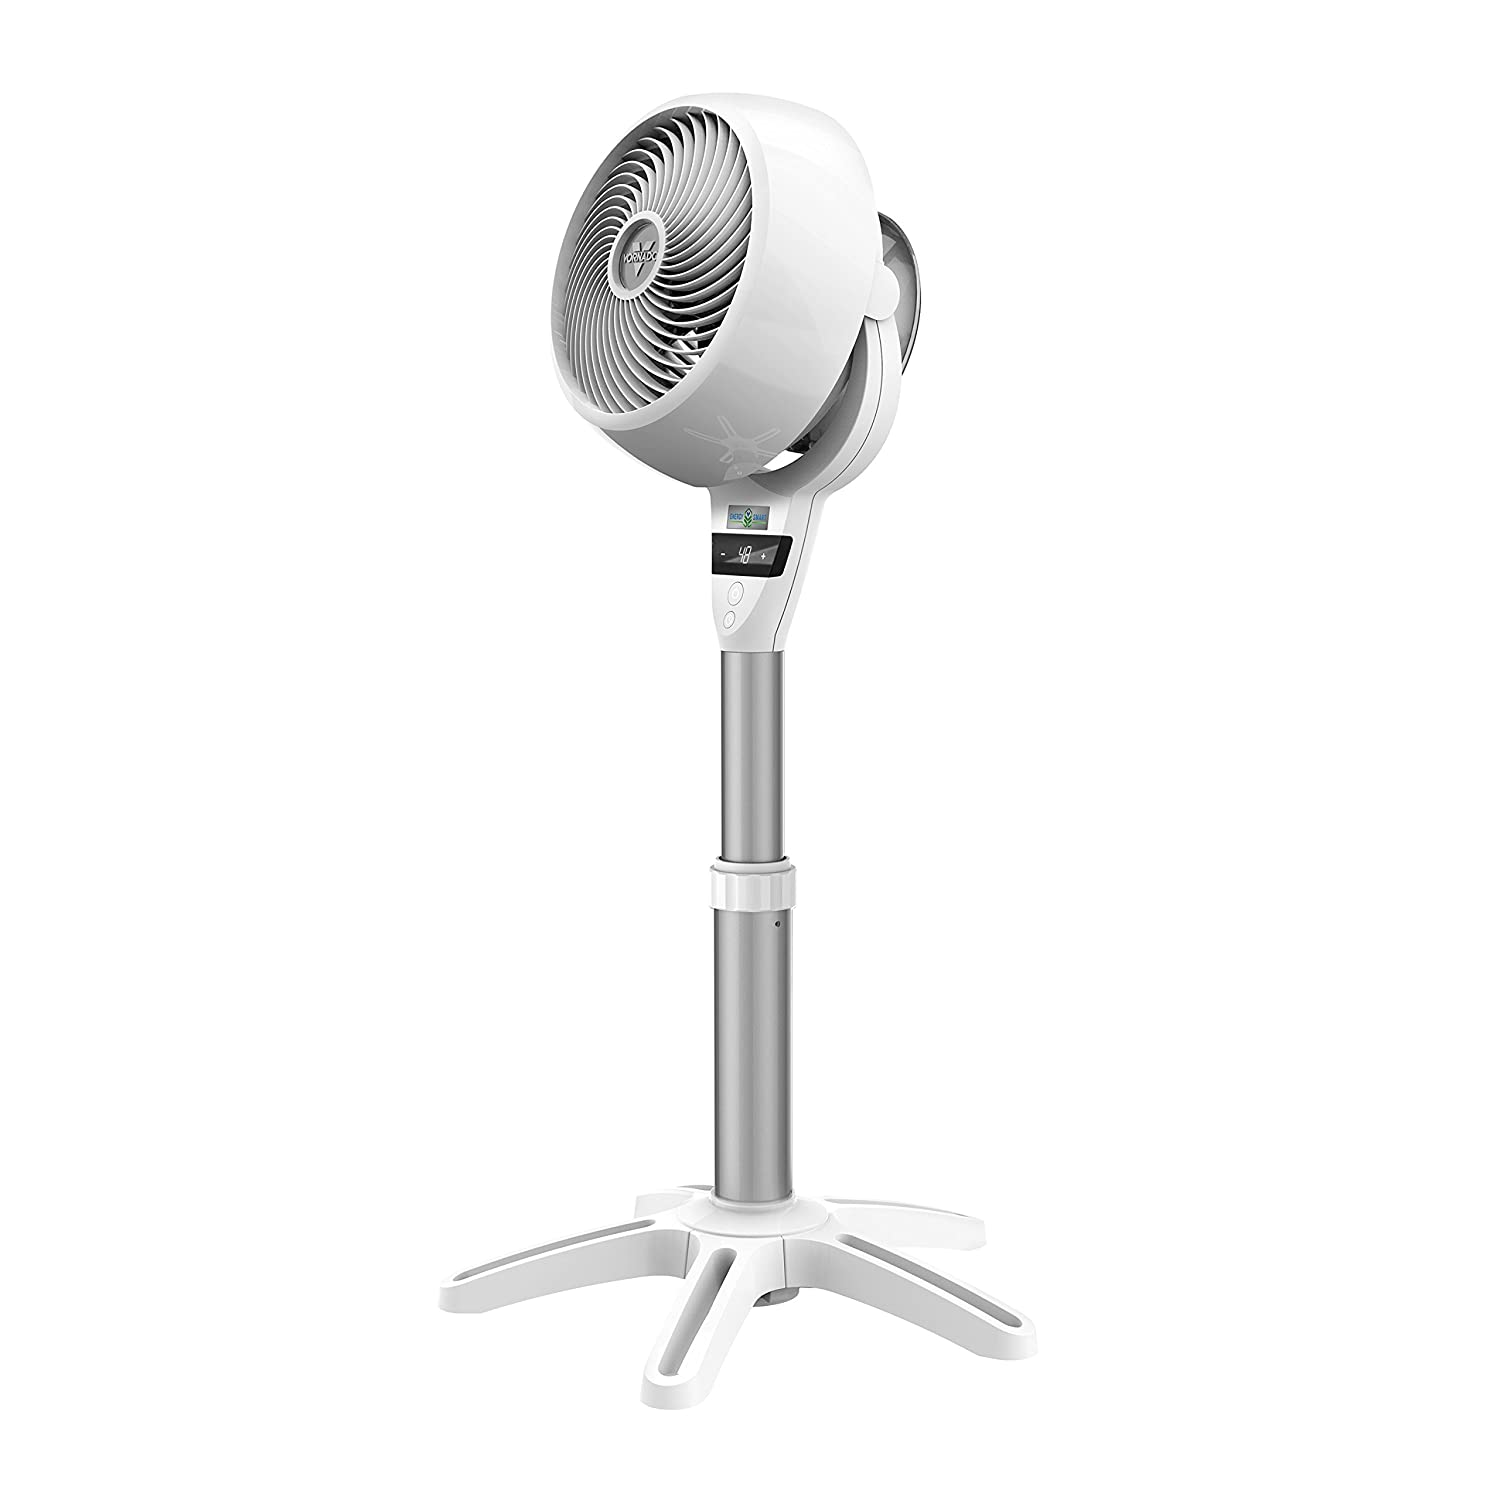 Best Pedestal Fan Reviews 2019 for Residential and Industrial